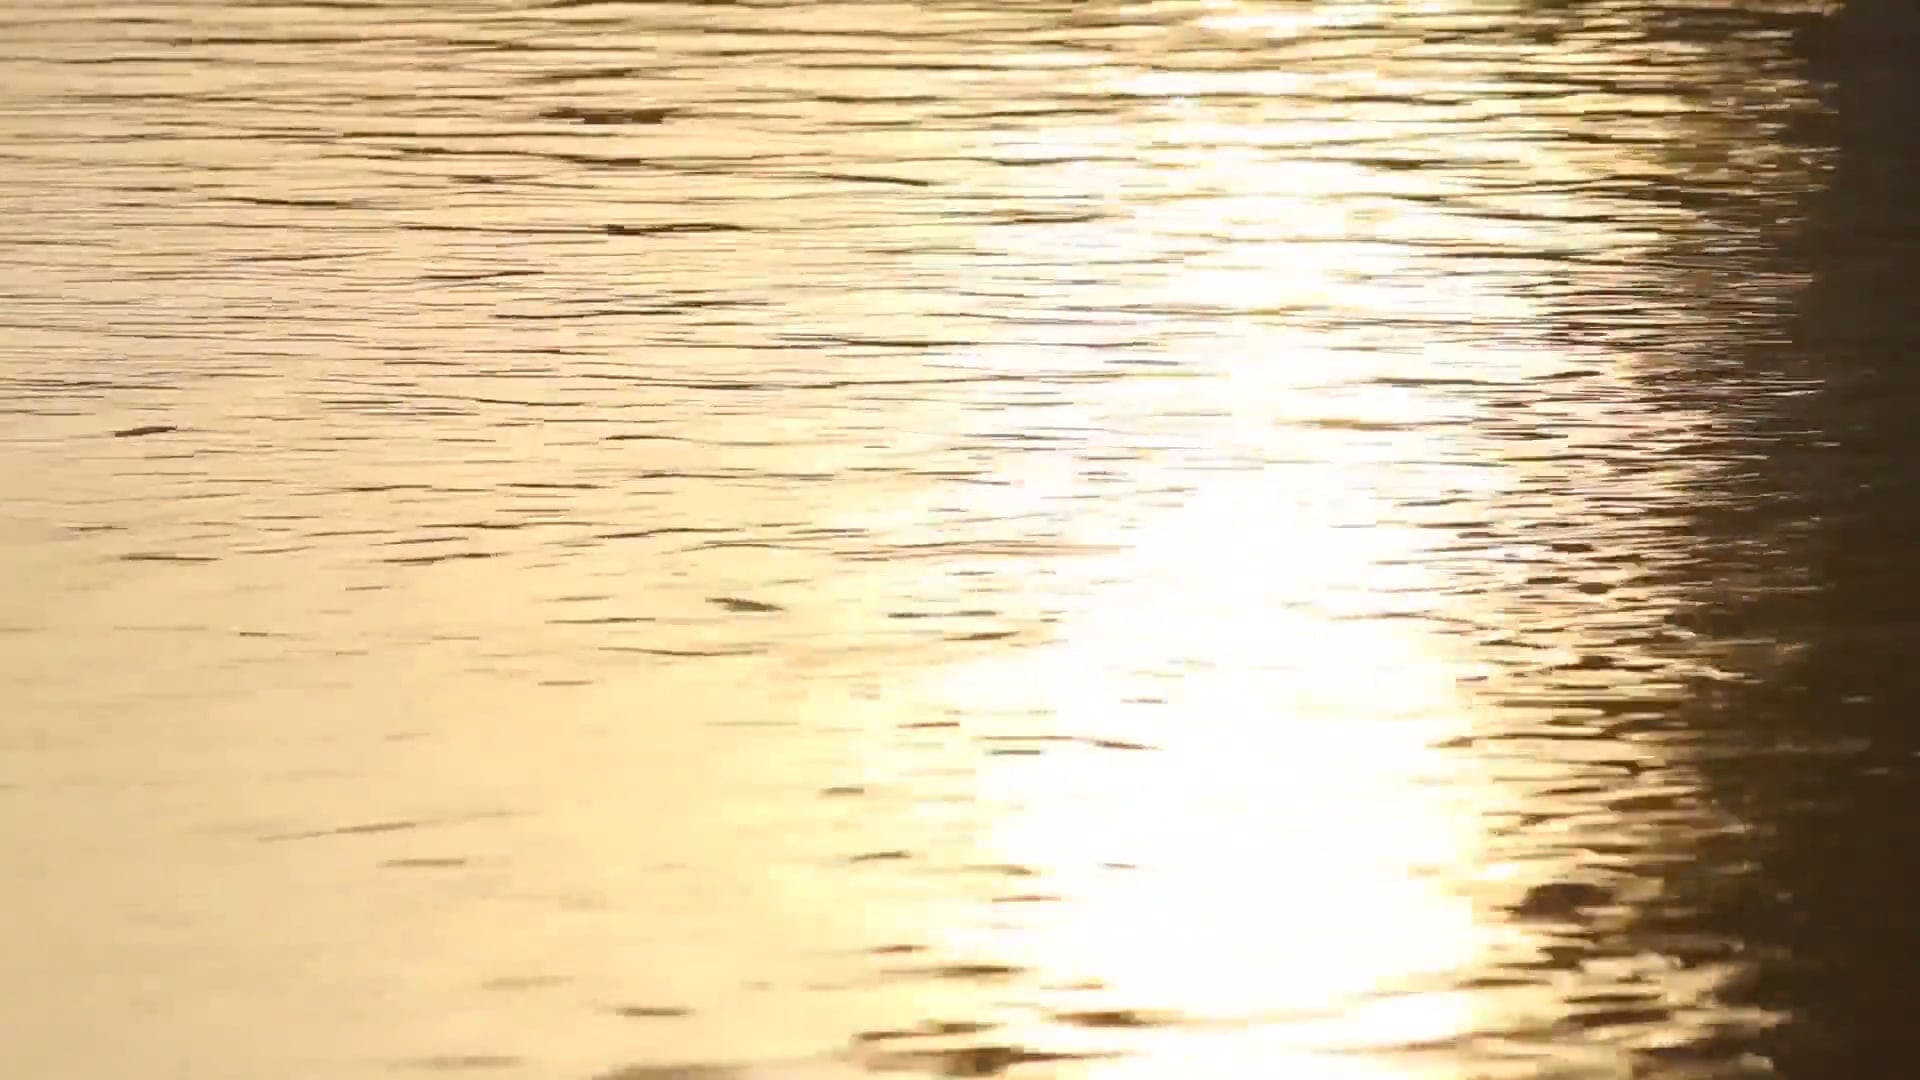 Sun Beam On Body Of Water